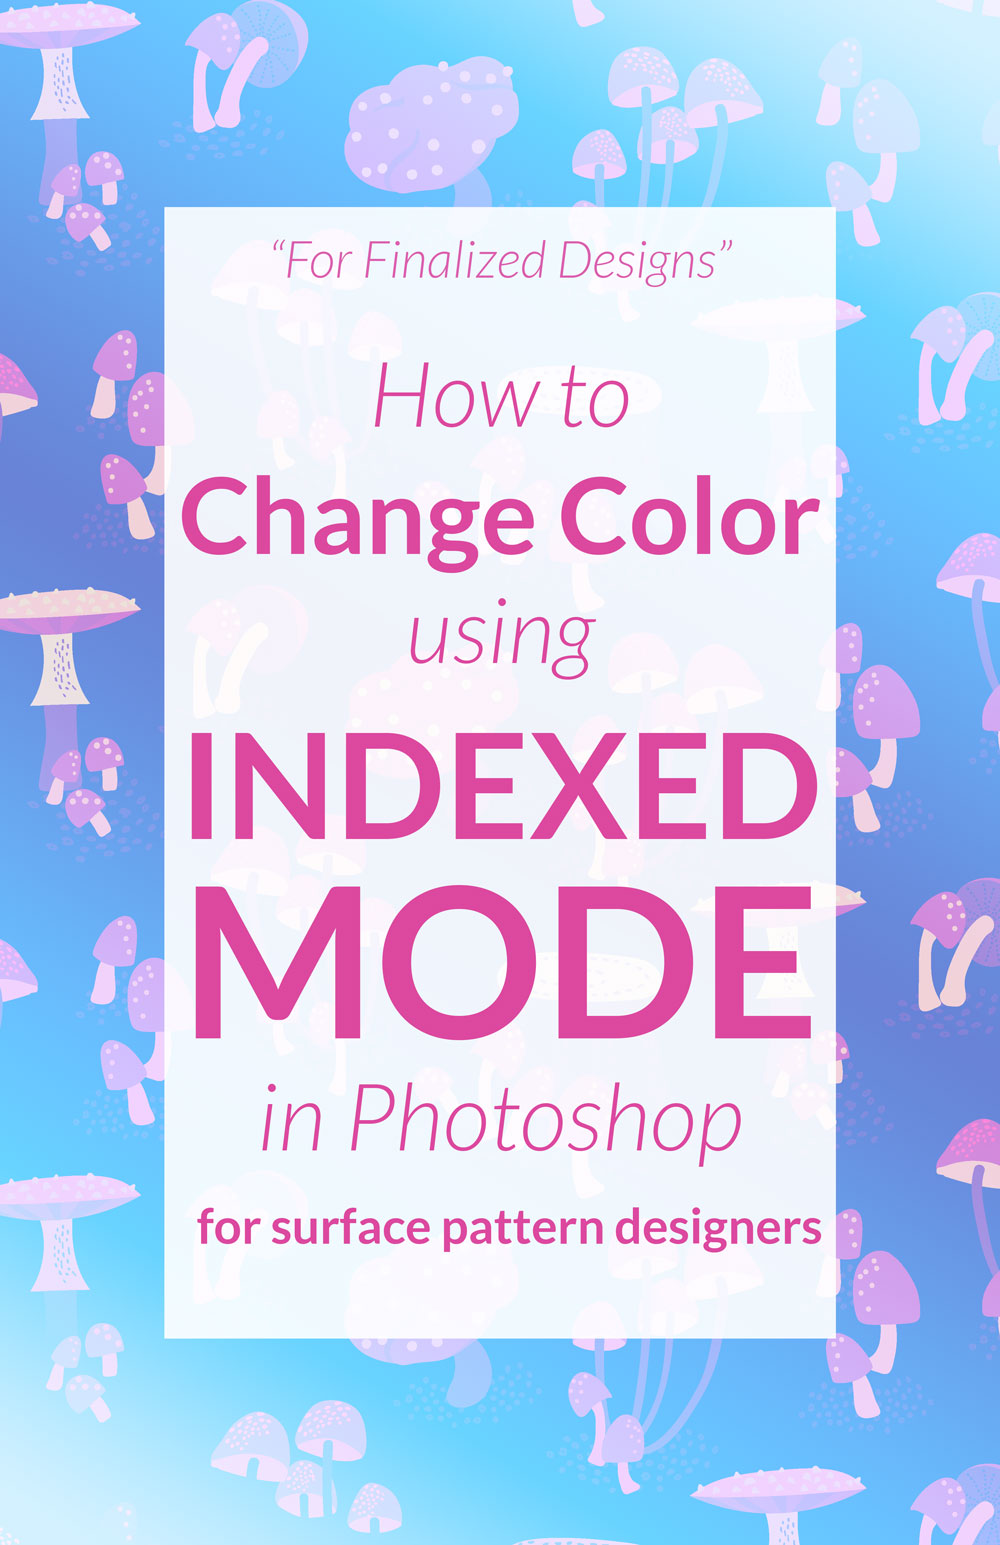 Change colors in photoshop using indexed mode